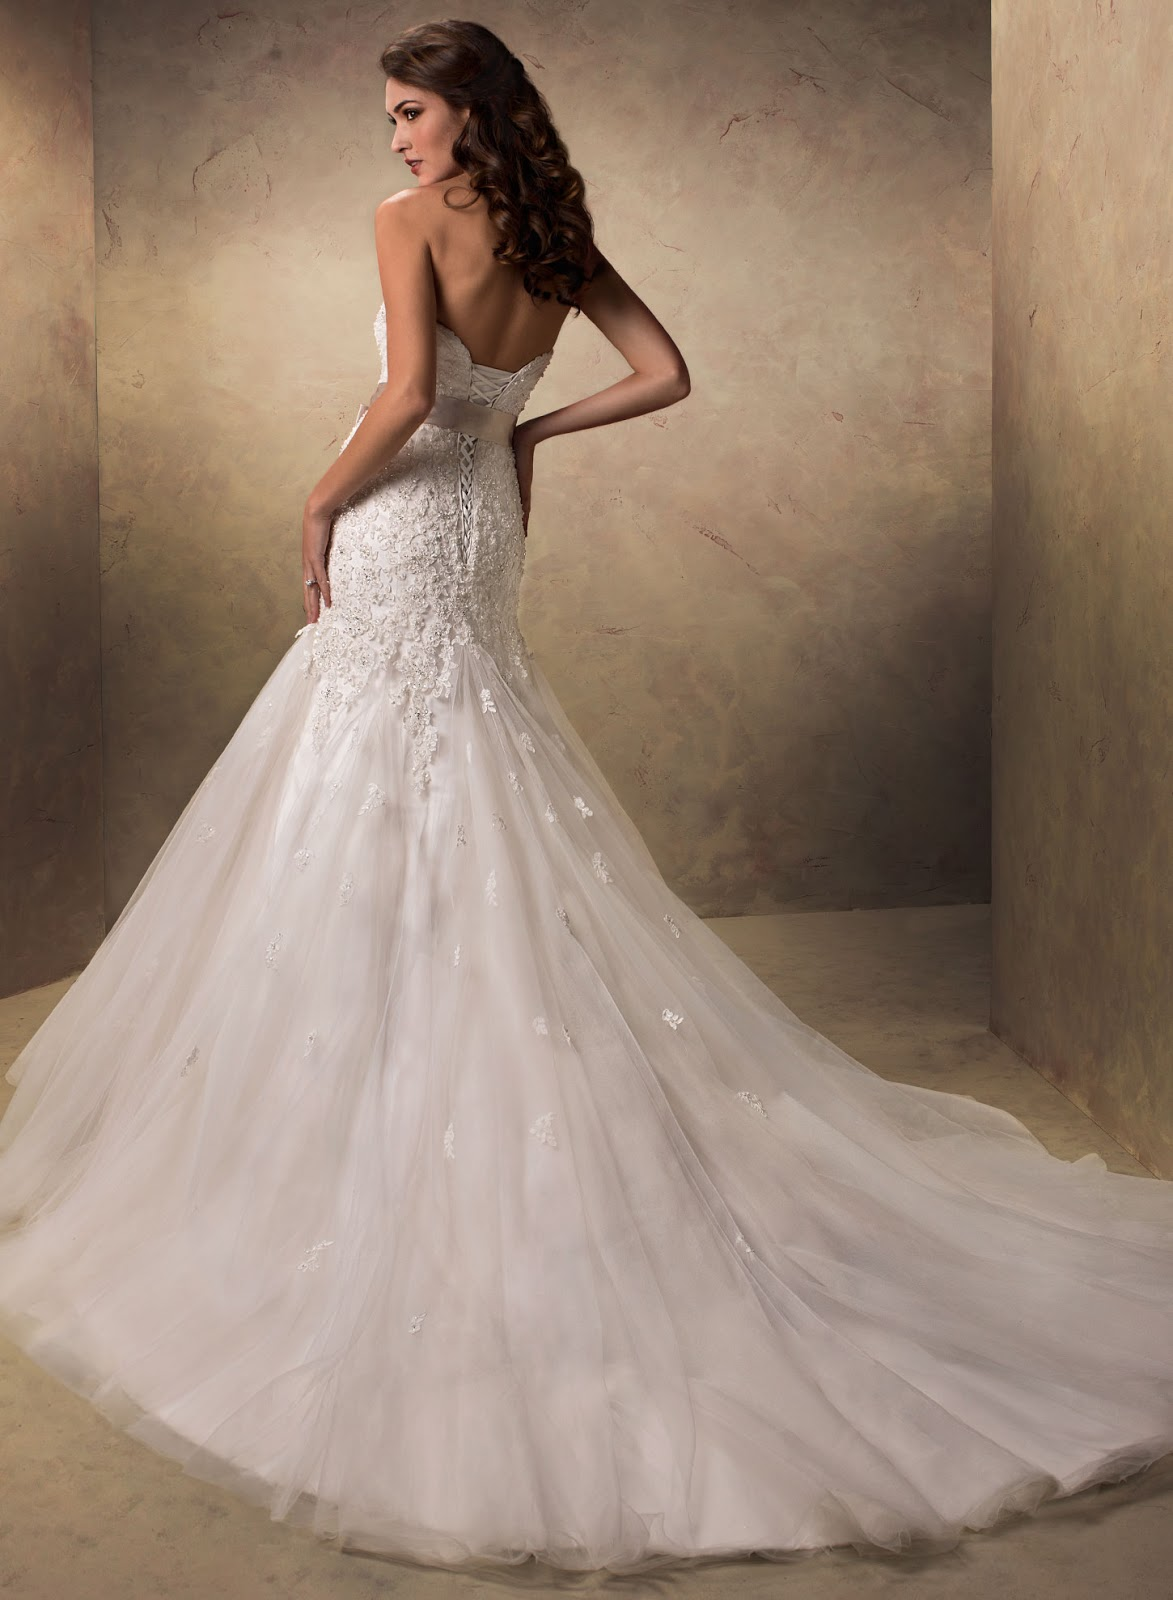 IN LOVE WITH BEAUTY Maggie Sottero Wedding Dresses part 1